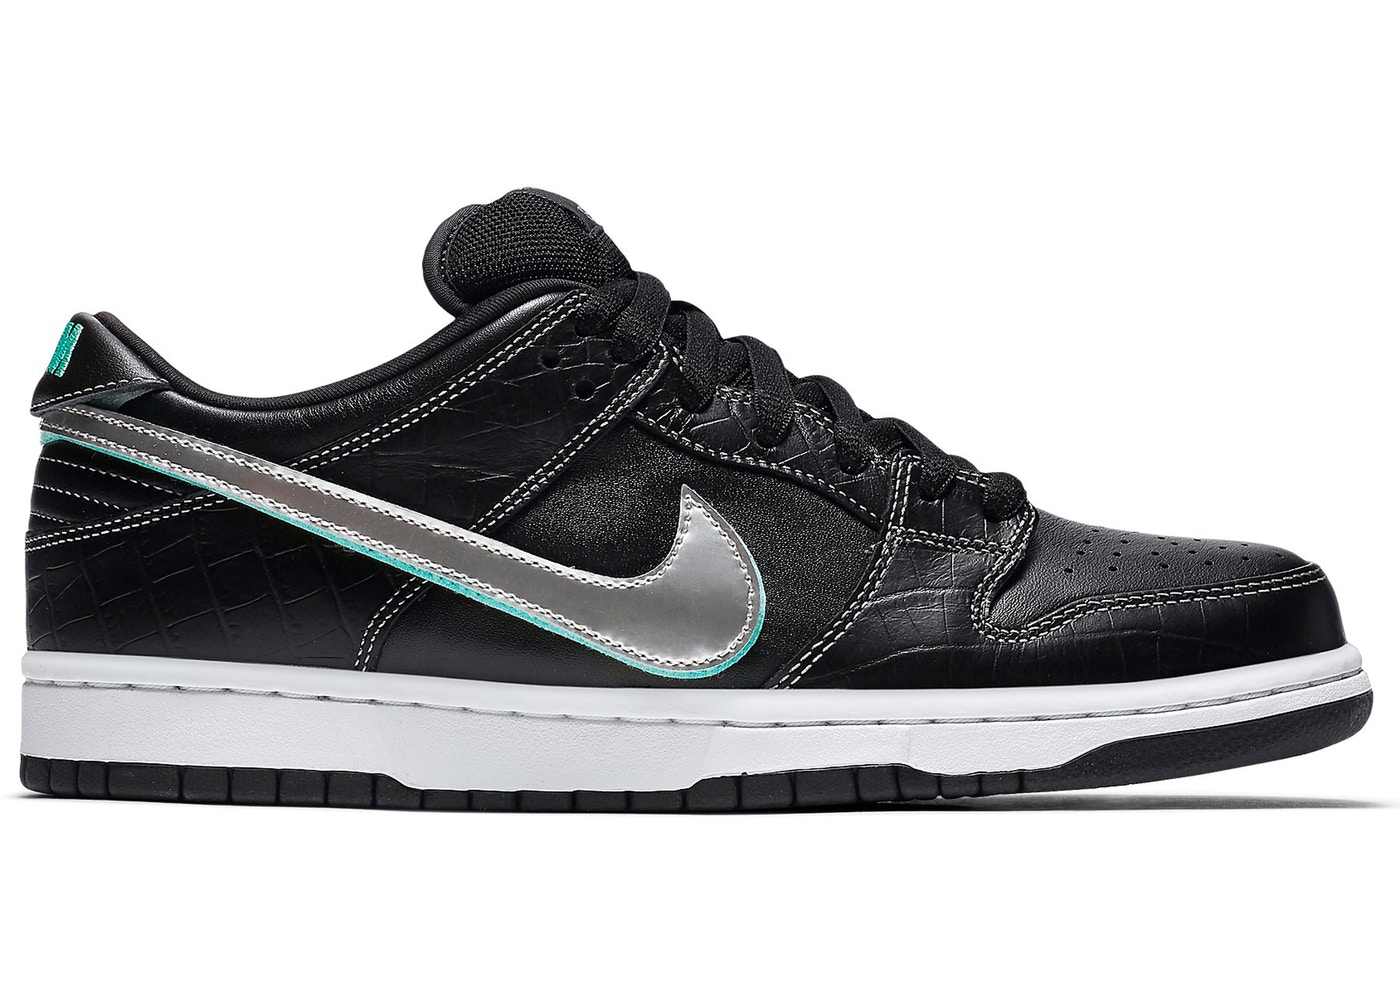 promo code 0b948 54ac5 Nike SB Dunk Low Diamond Supply Co Black Diamond